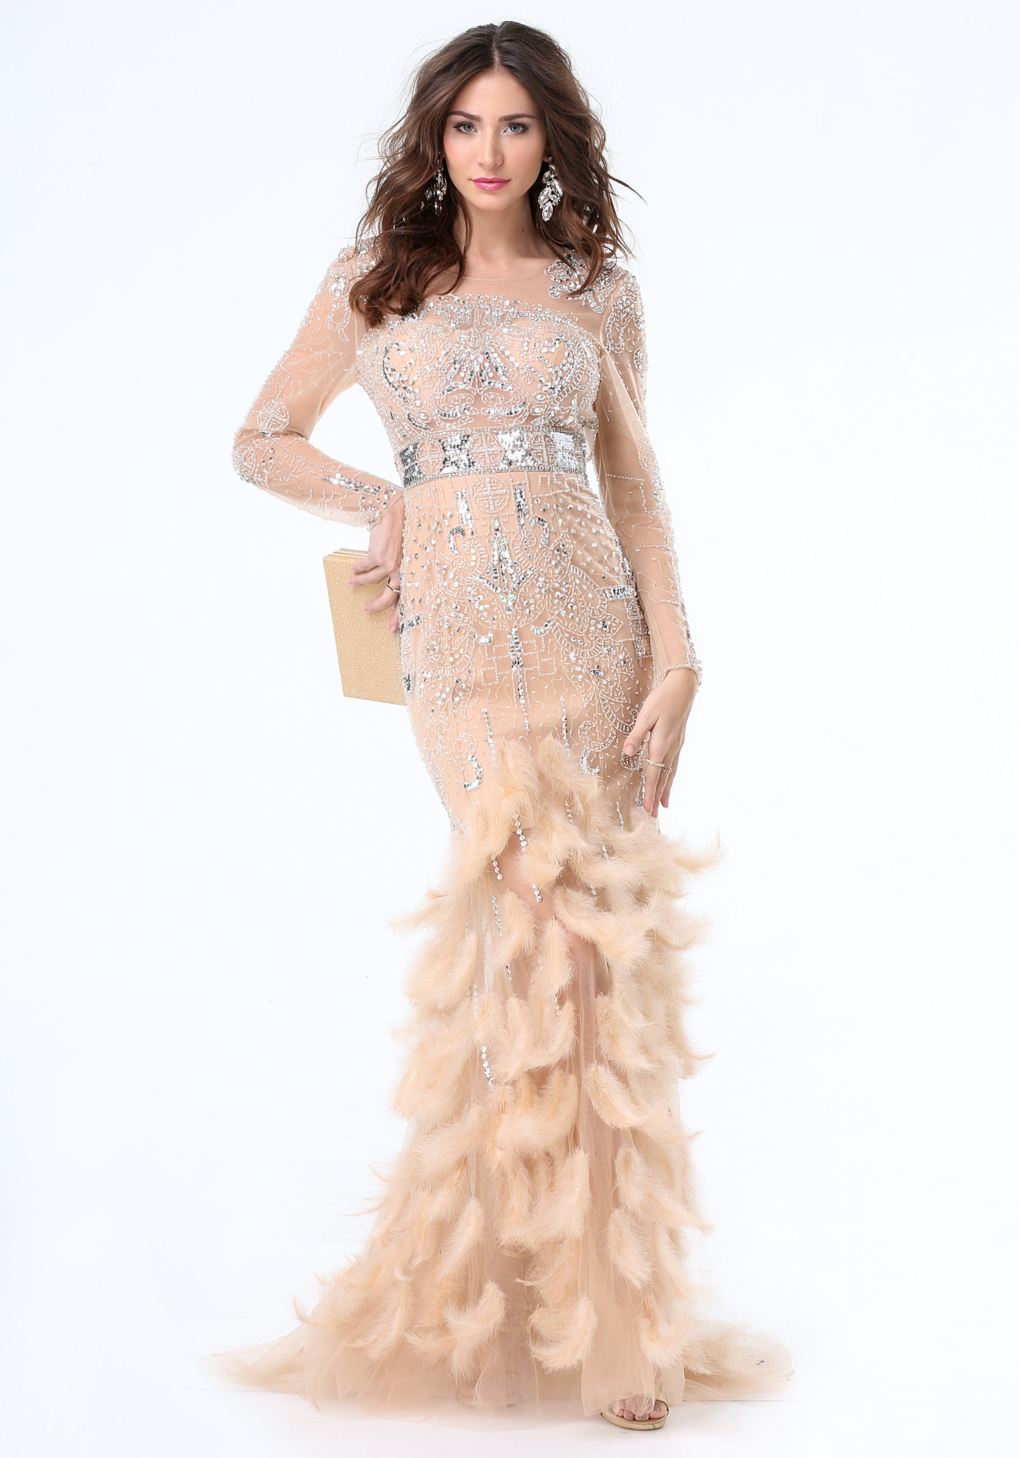 Lyst - Bebe Jewel & Feather Gown in Natural